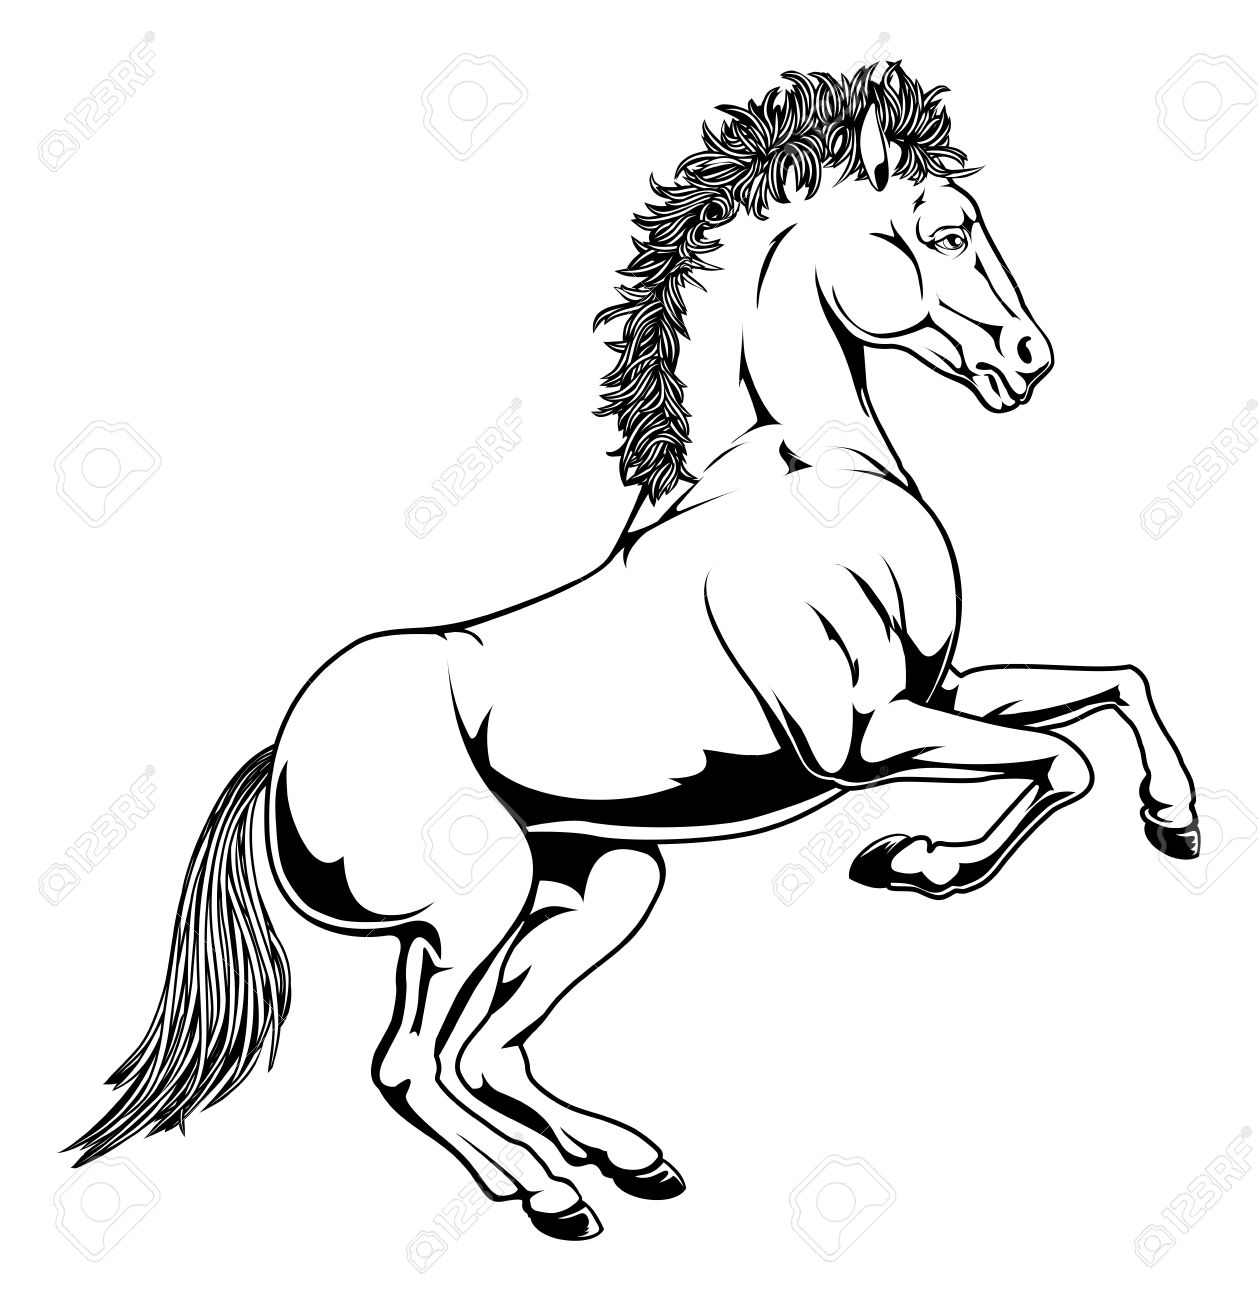 1258x1300 An Illustration Of A Black And White Monochrome Horse Rearing